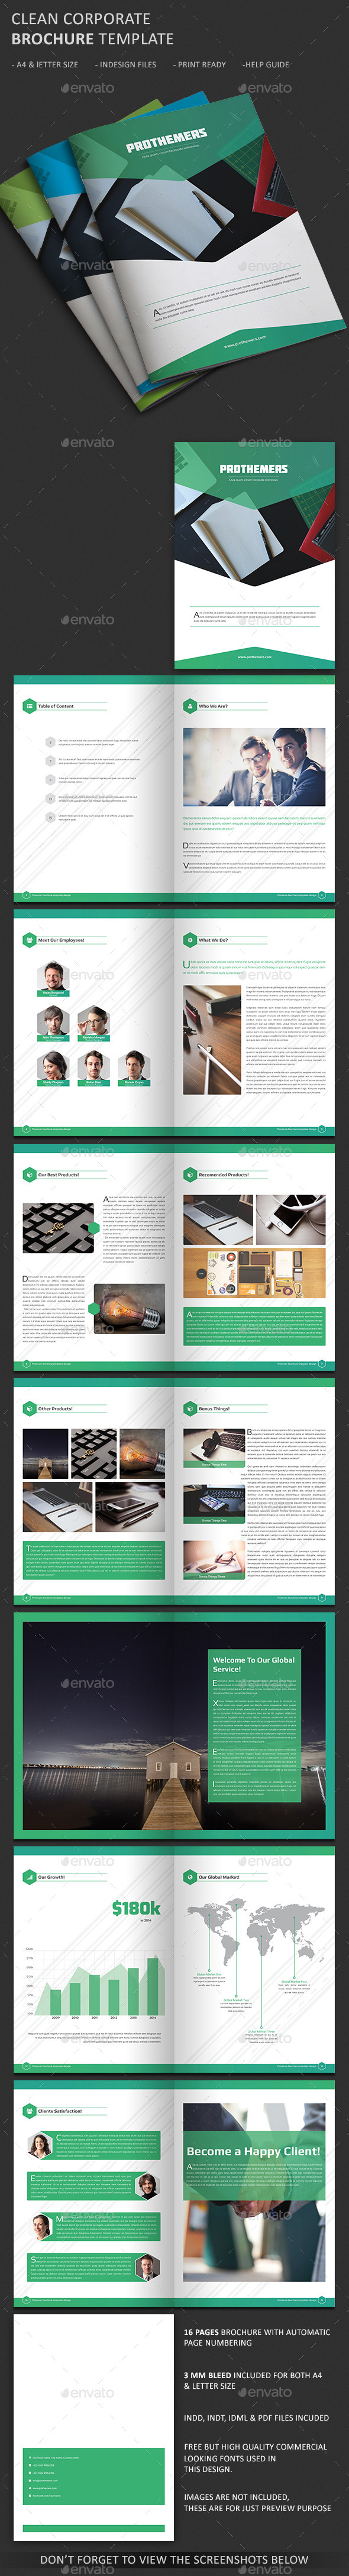 GraphicRiver Corporate Business Brochure 11031898